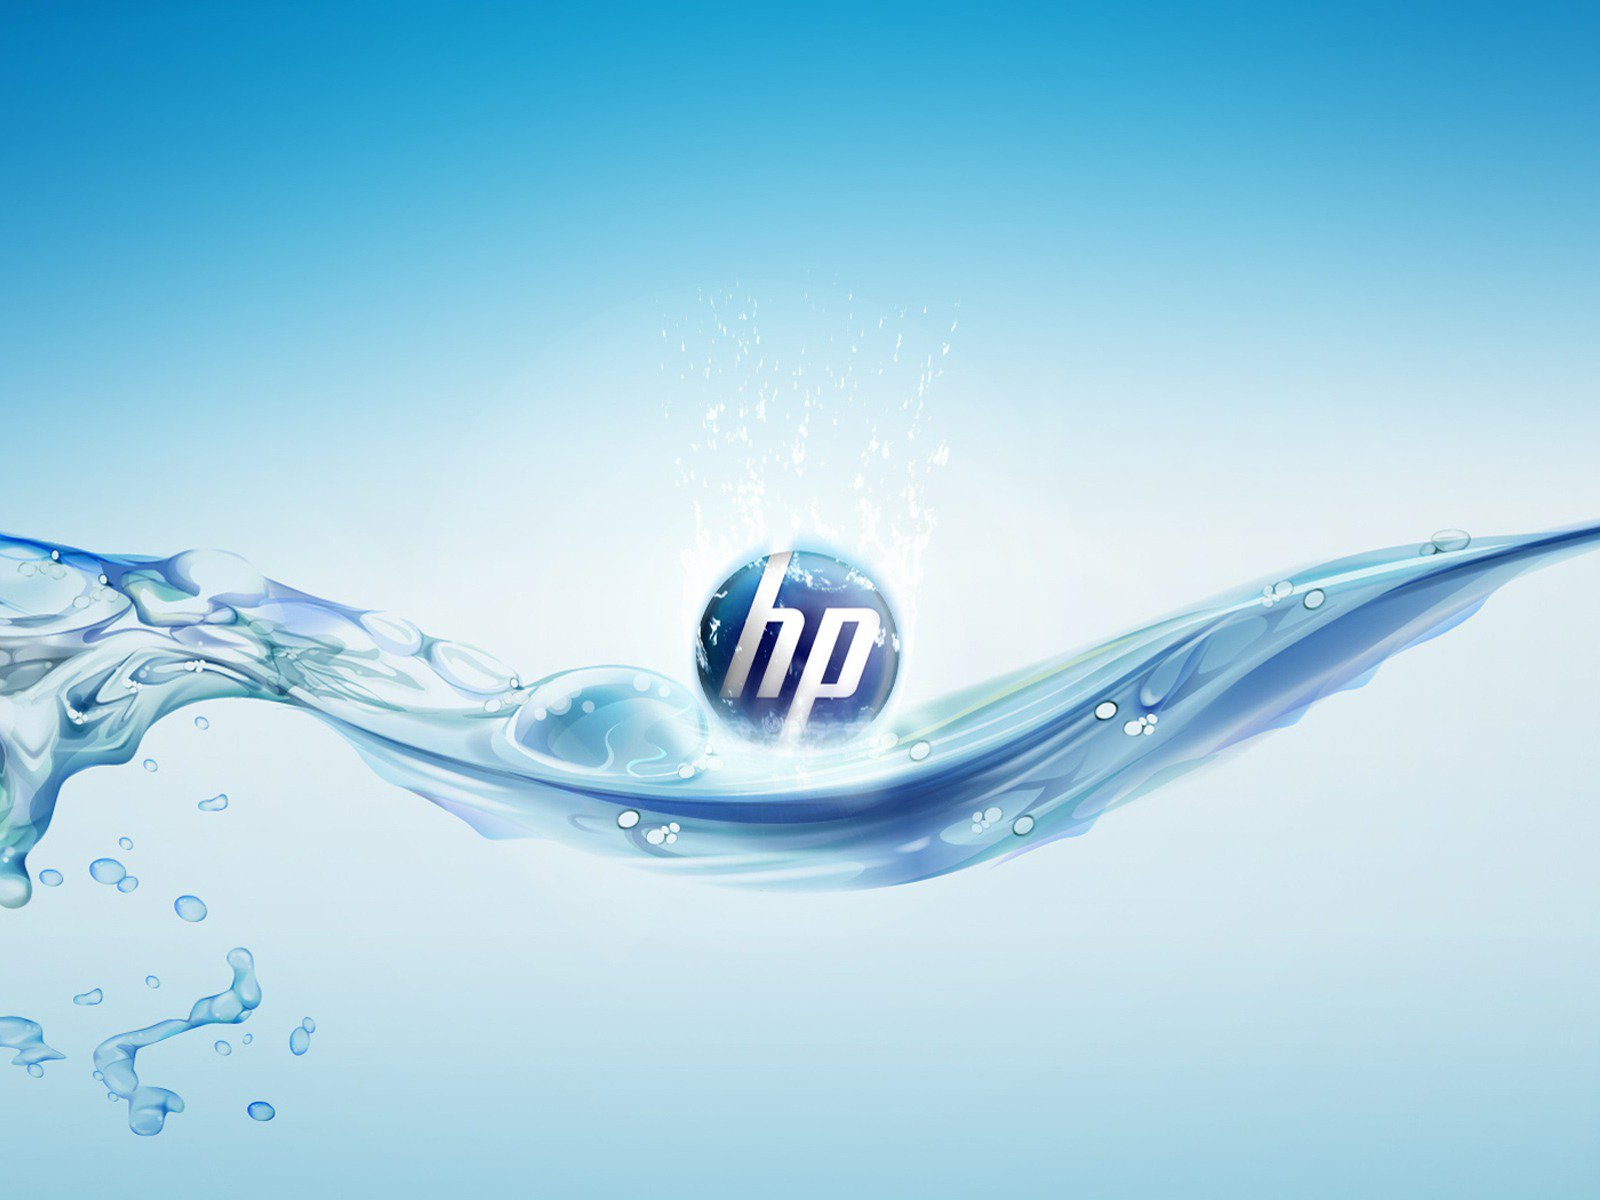 http://2.bp.blogspot.com/-npDUcSDt4C8/T90e_wbqIGI/AAAAAAAAB5Q/k2XMp8PCdks/s1600/brands,%20hp_logo_floating_on_water-normal,%20el%20color%20comunica;%20Patricia%20gallardo;%20Branding;%20experta%20en%20color.jpg